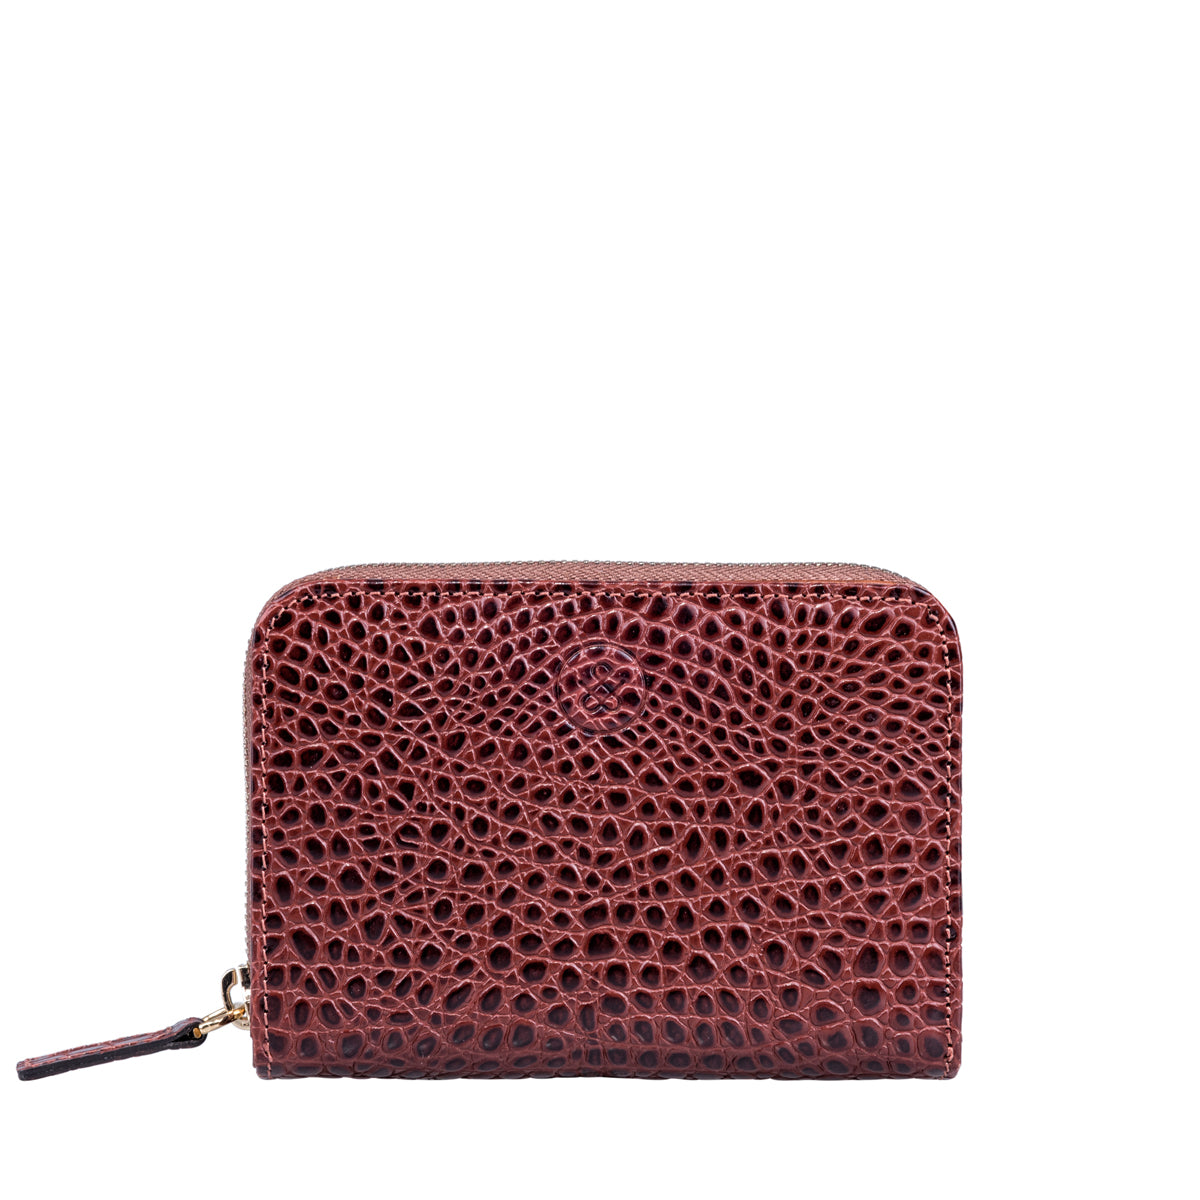 Image 1 of the 'Forino' Chestnut Mock Croc Veg Tanned Leather Purse